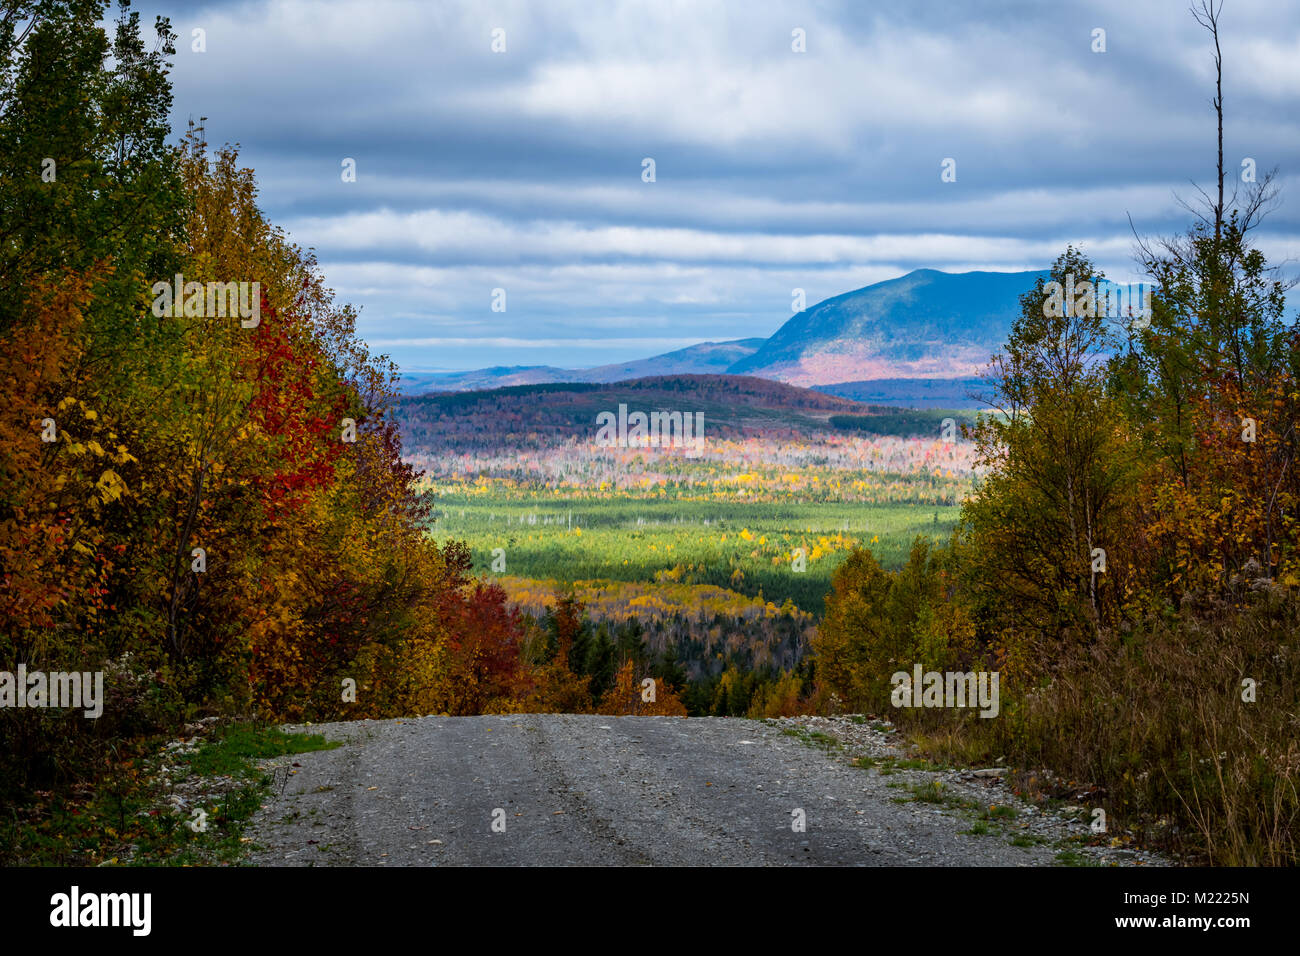 The Forest Over the Edge of dropoff on gravel road - Stock Image